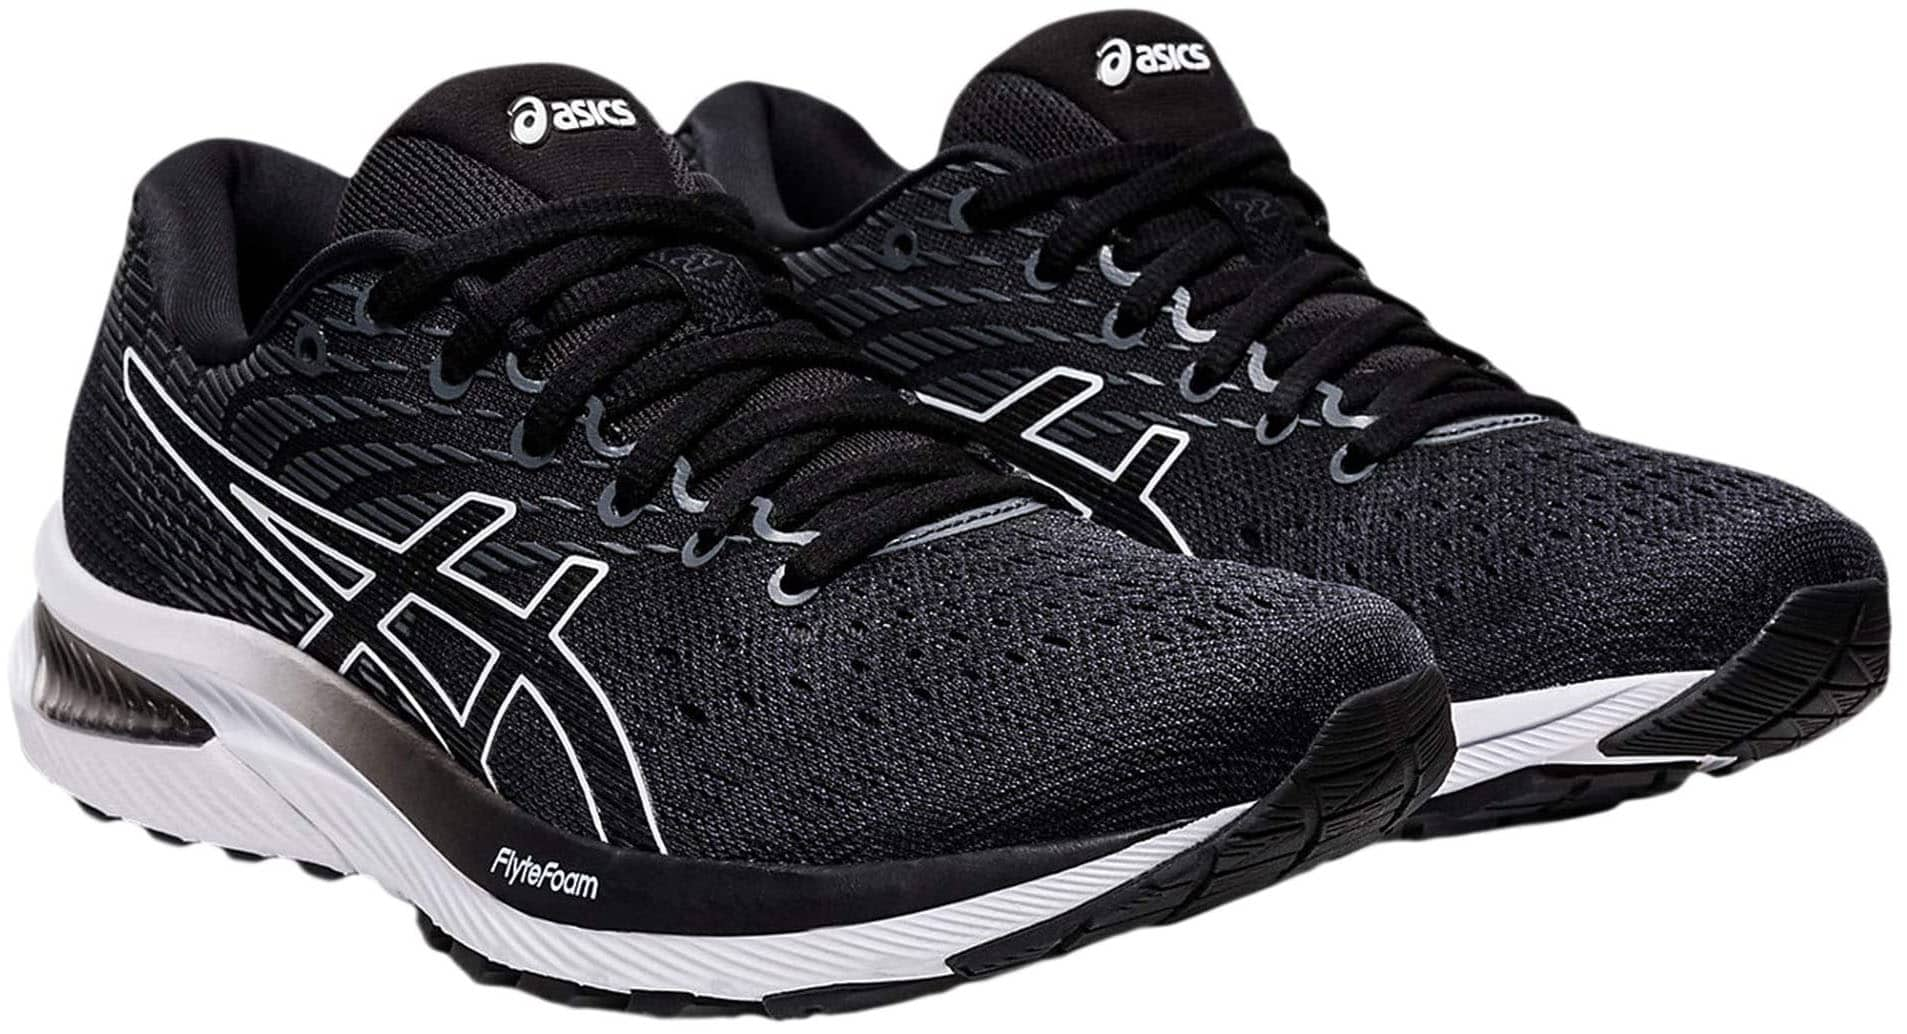 For the neutral runners, the Gel-Cumulus 22 is incorporated with the FLYTEFOAM technology for a great fit and feel